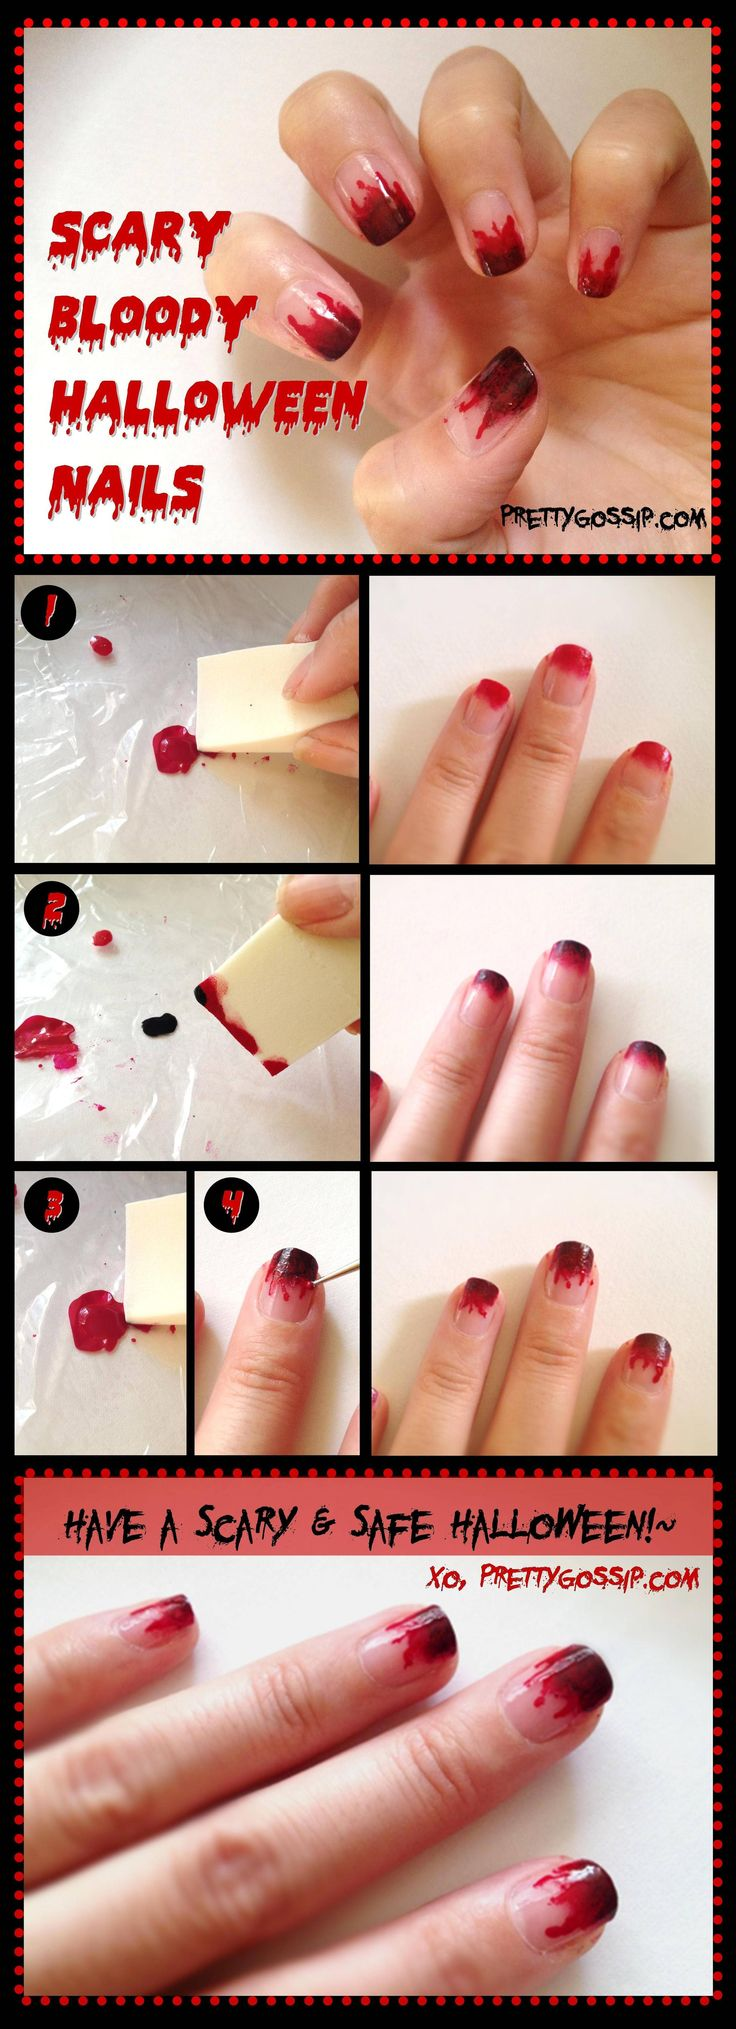 Bloody Halloween Nails (Great for Zombies) - Imgur